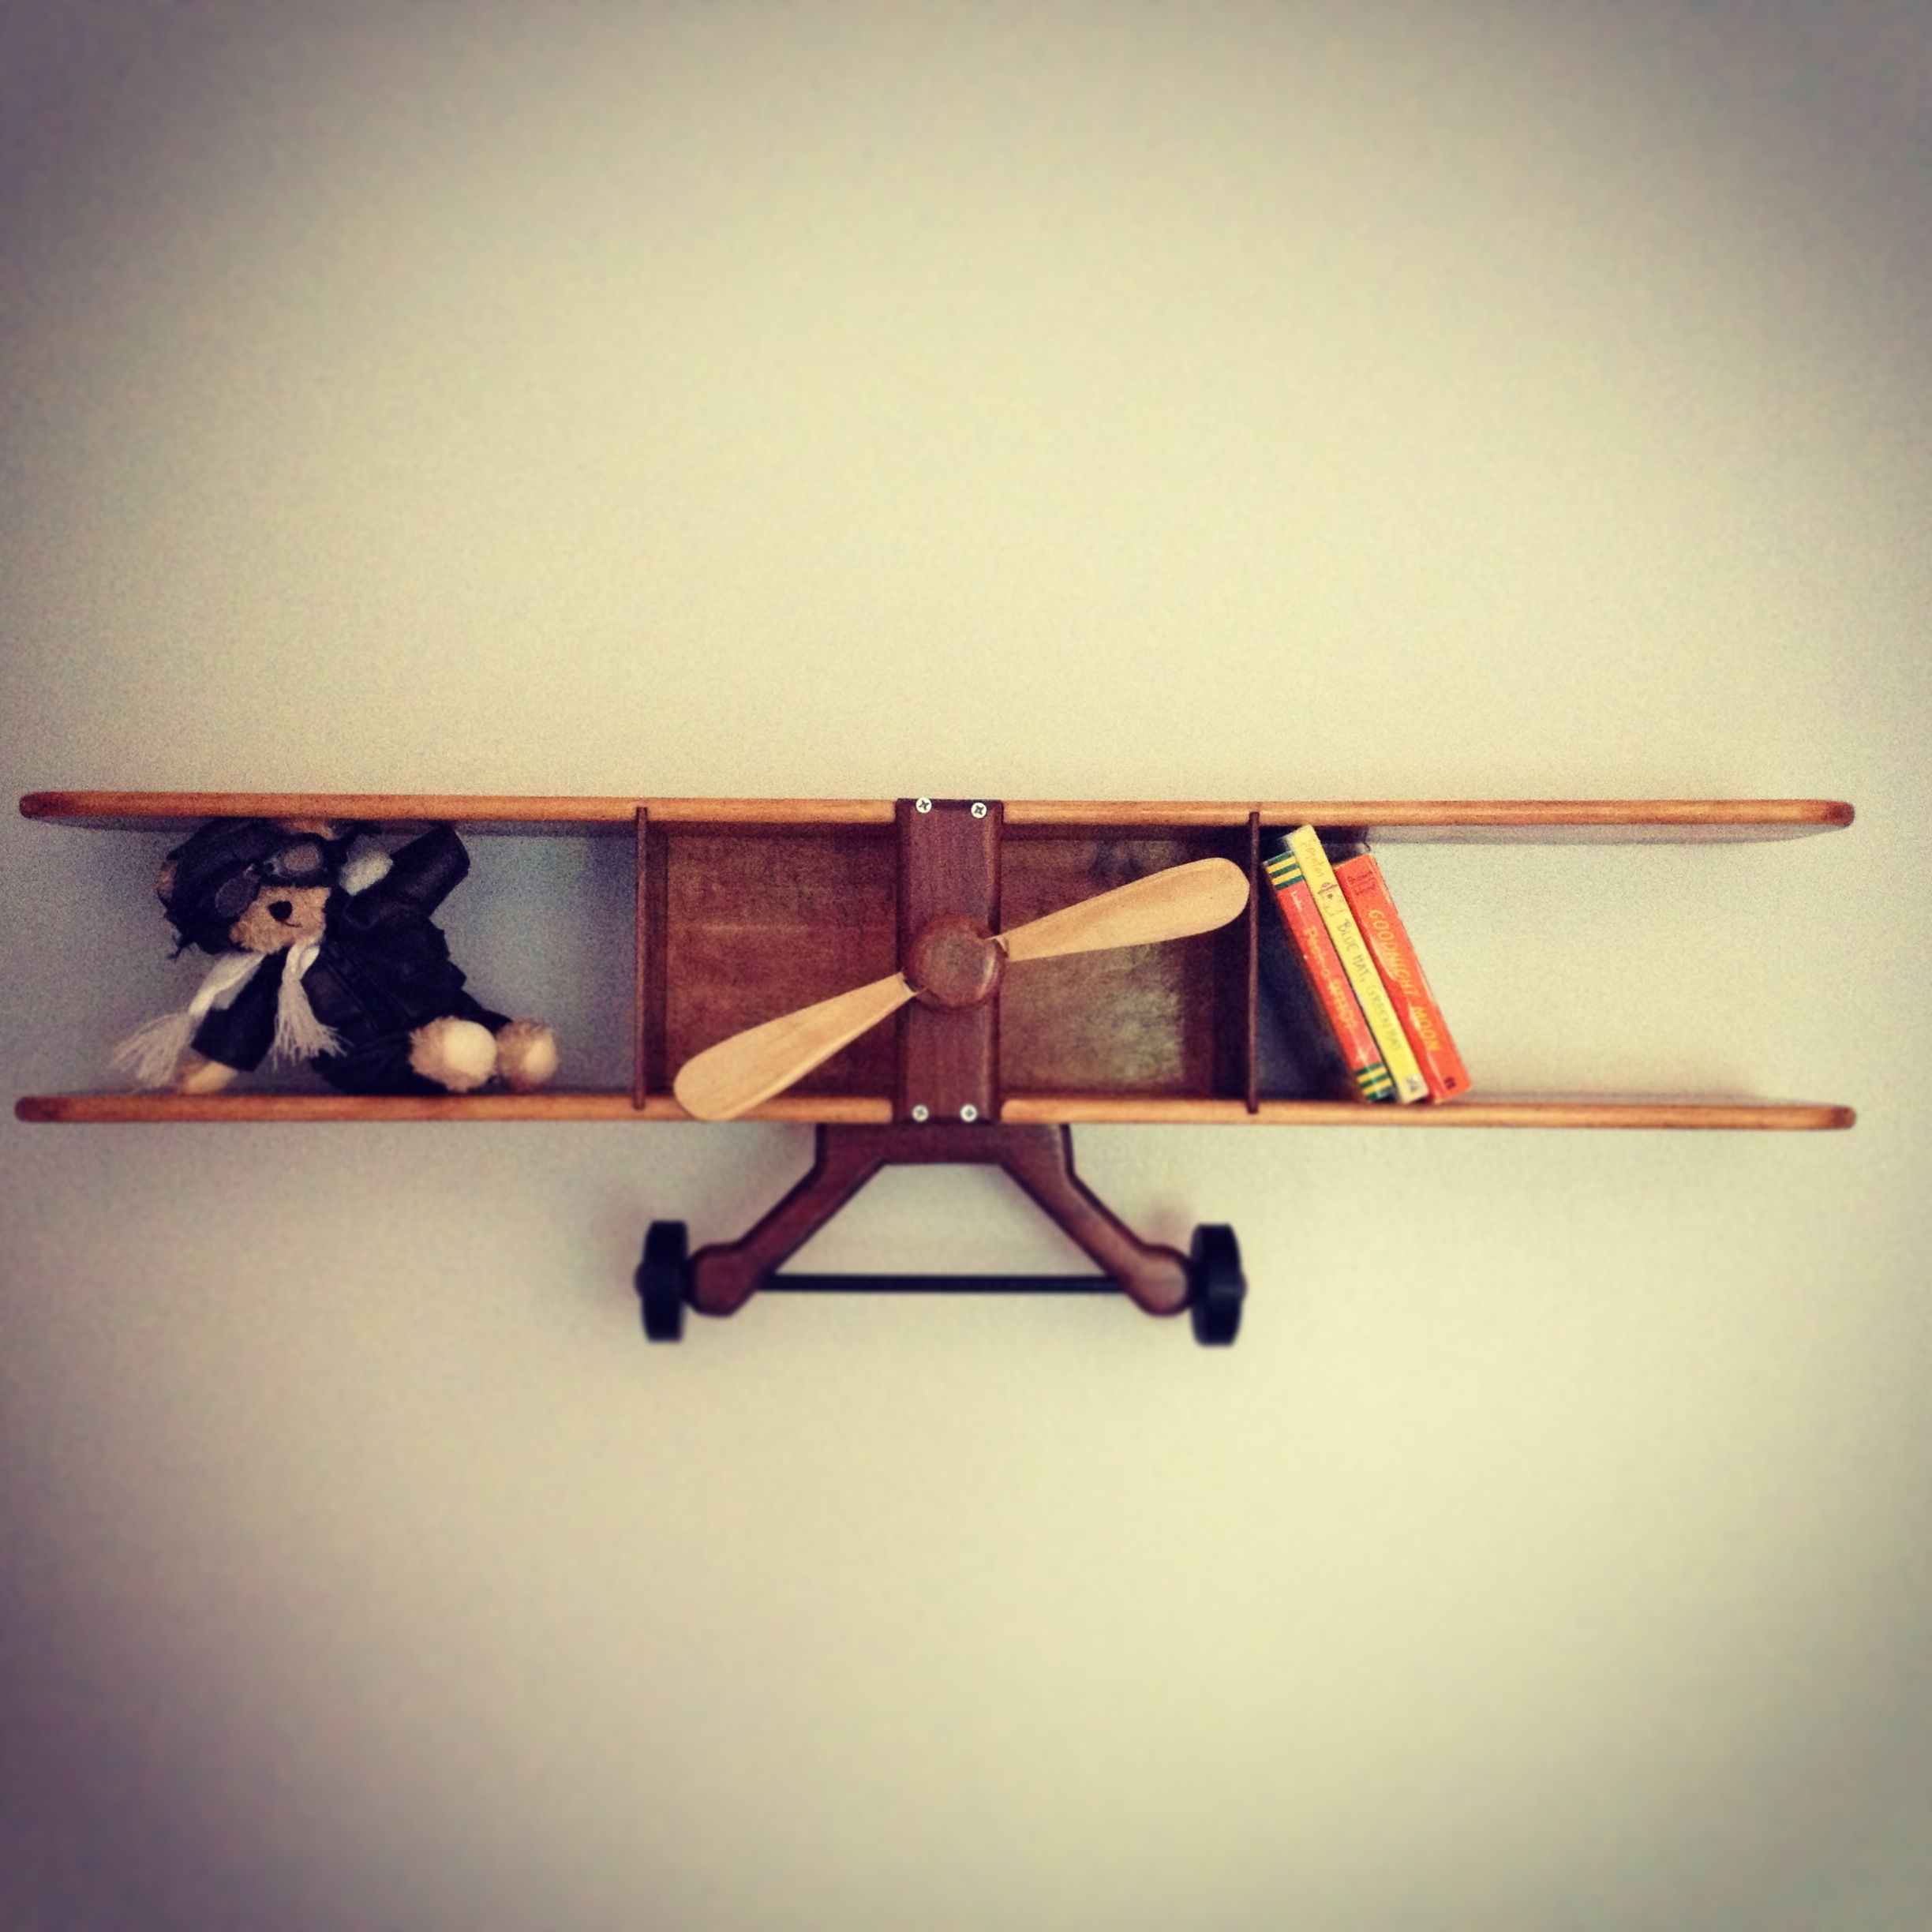 Travel/Aviator Nursery Airplane Bookshelf | Airplanes, Nursery and ...